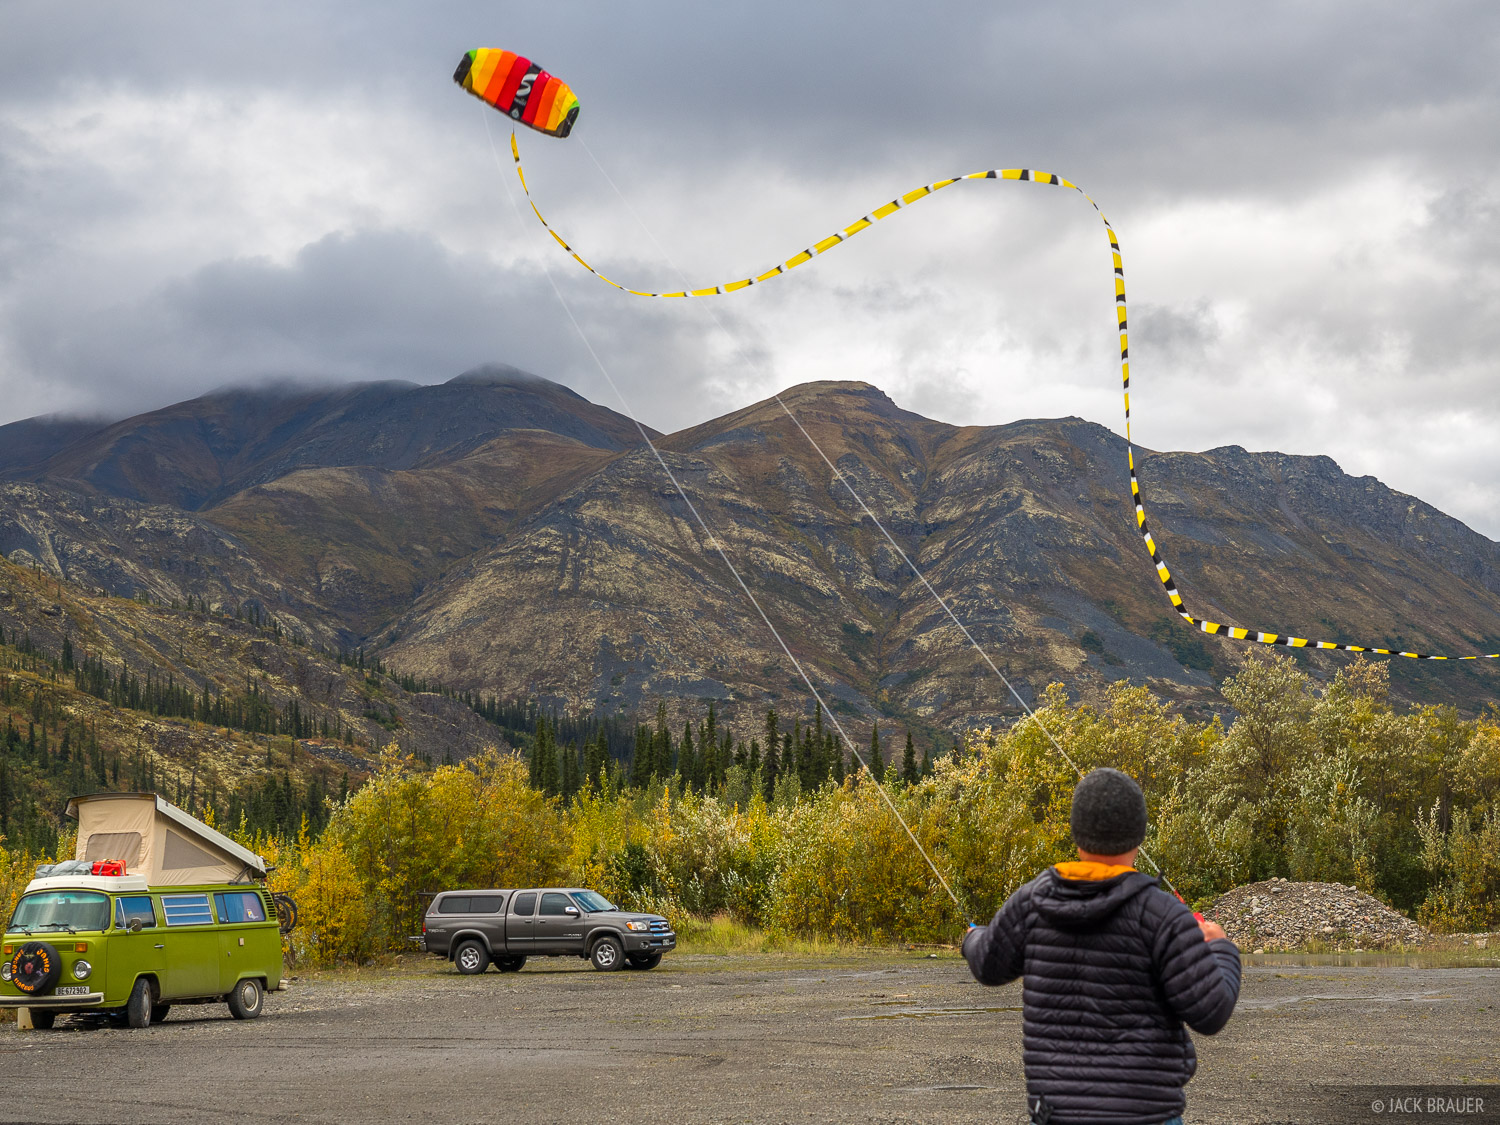 Flying the kite near the North Klondike River, just killing some time before our 7-day backpack trek in the Tombstone Range...